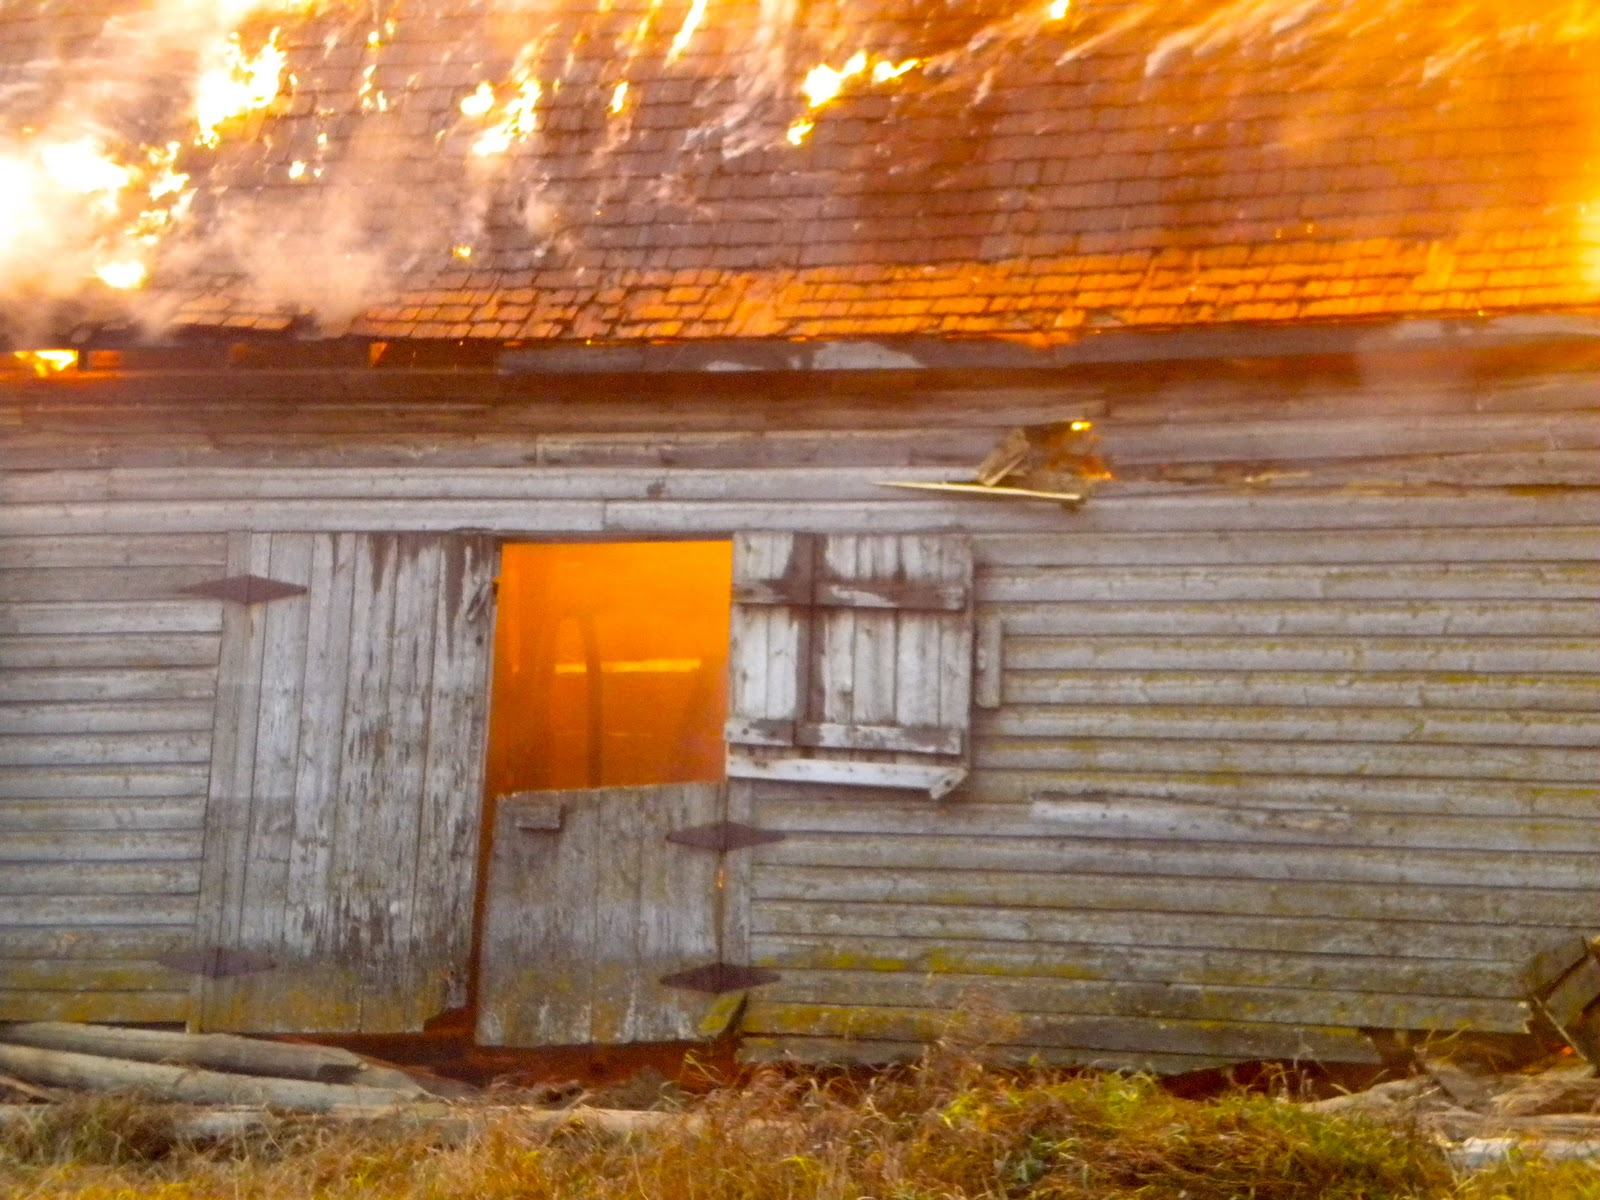 critical analysis essay on barn burning